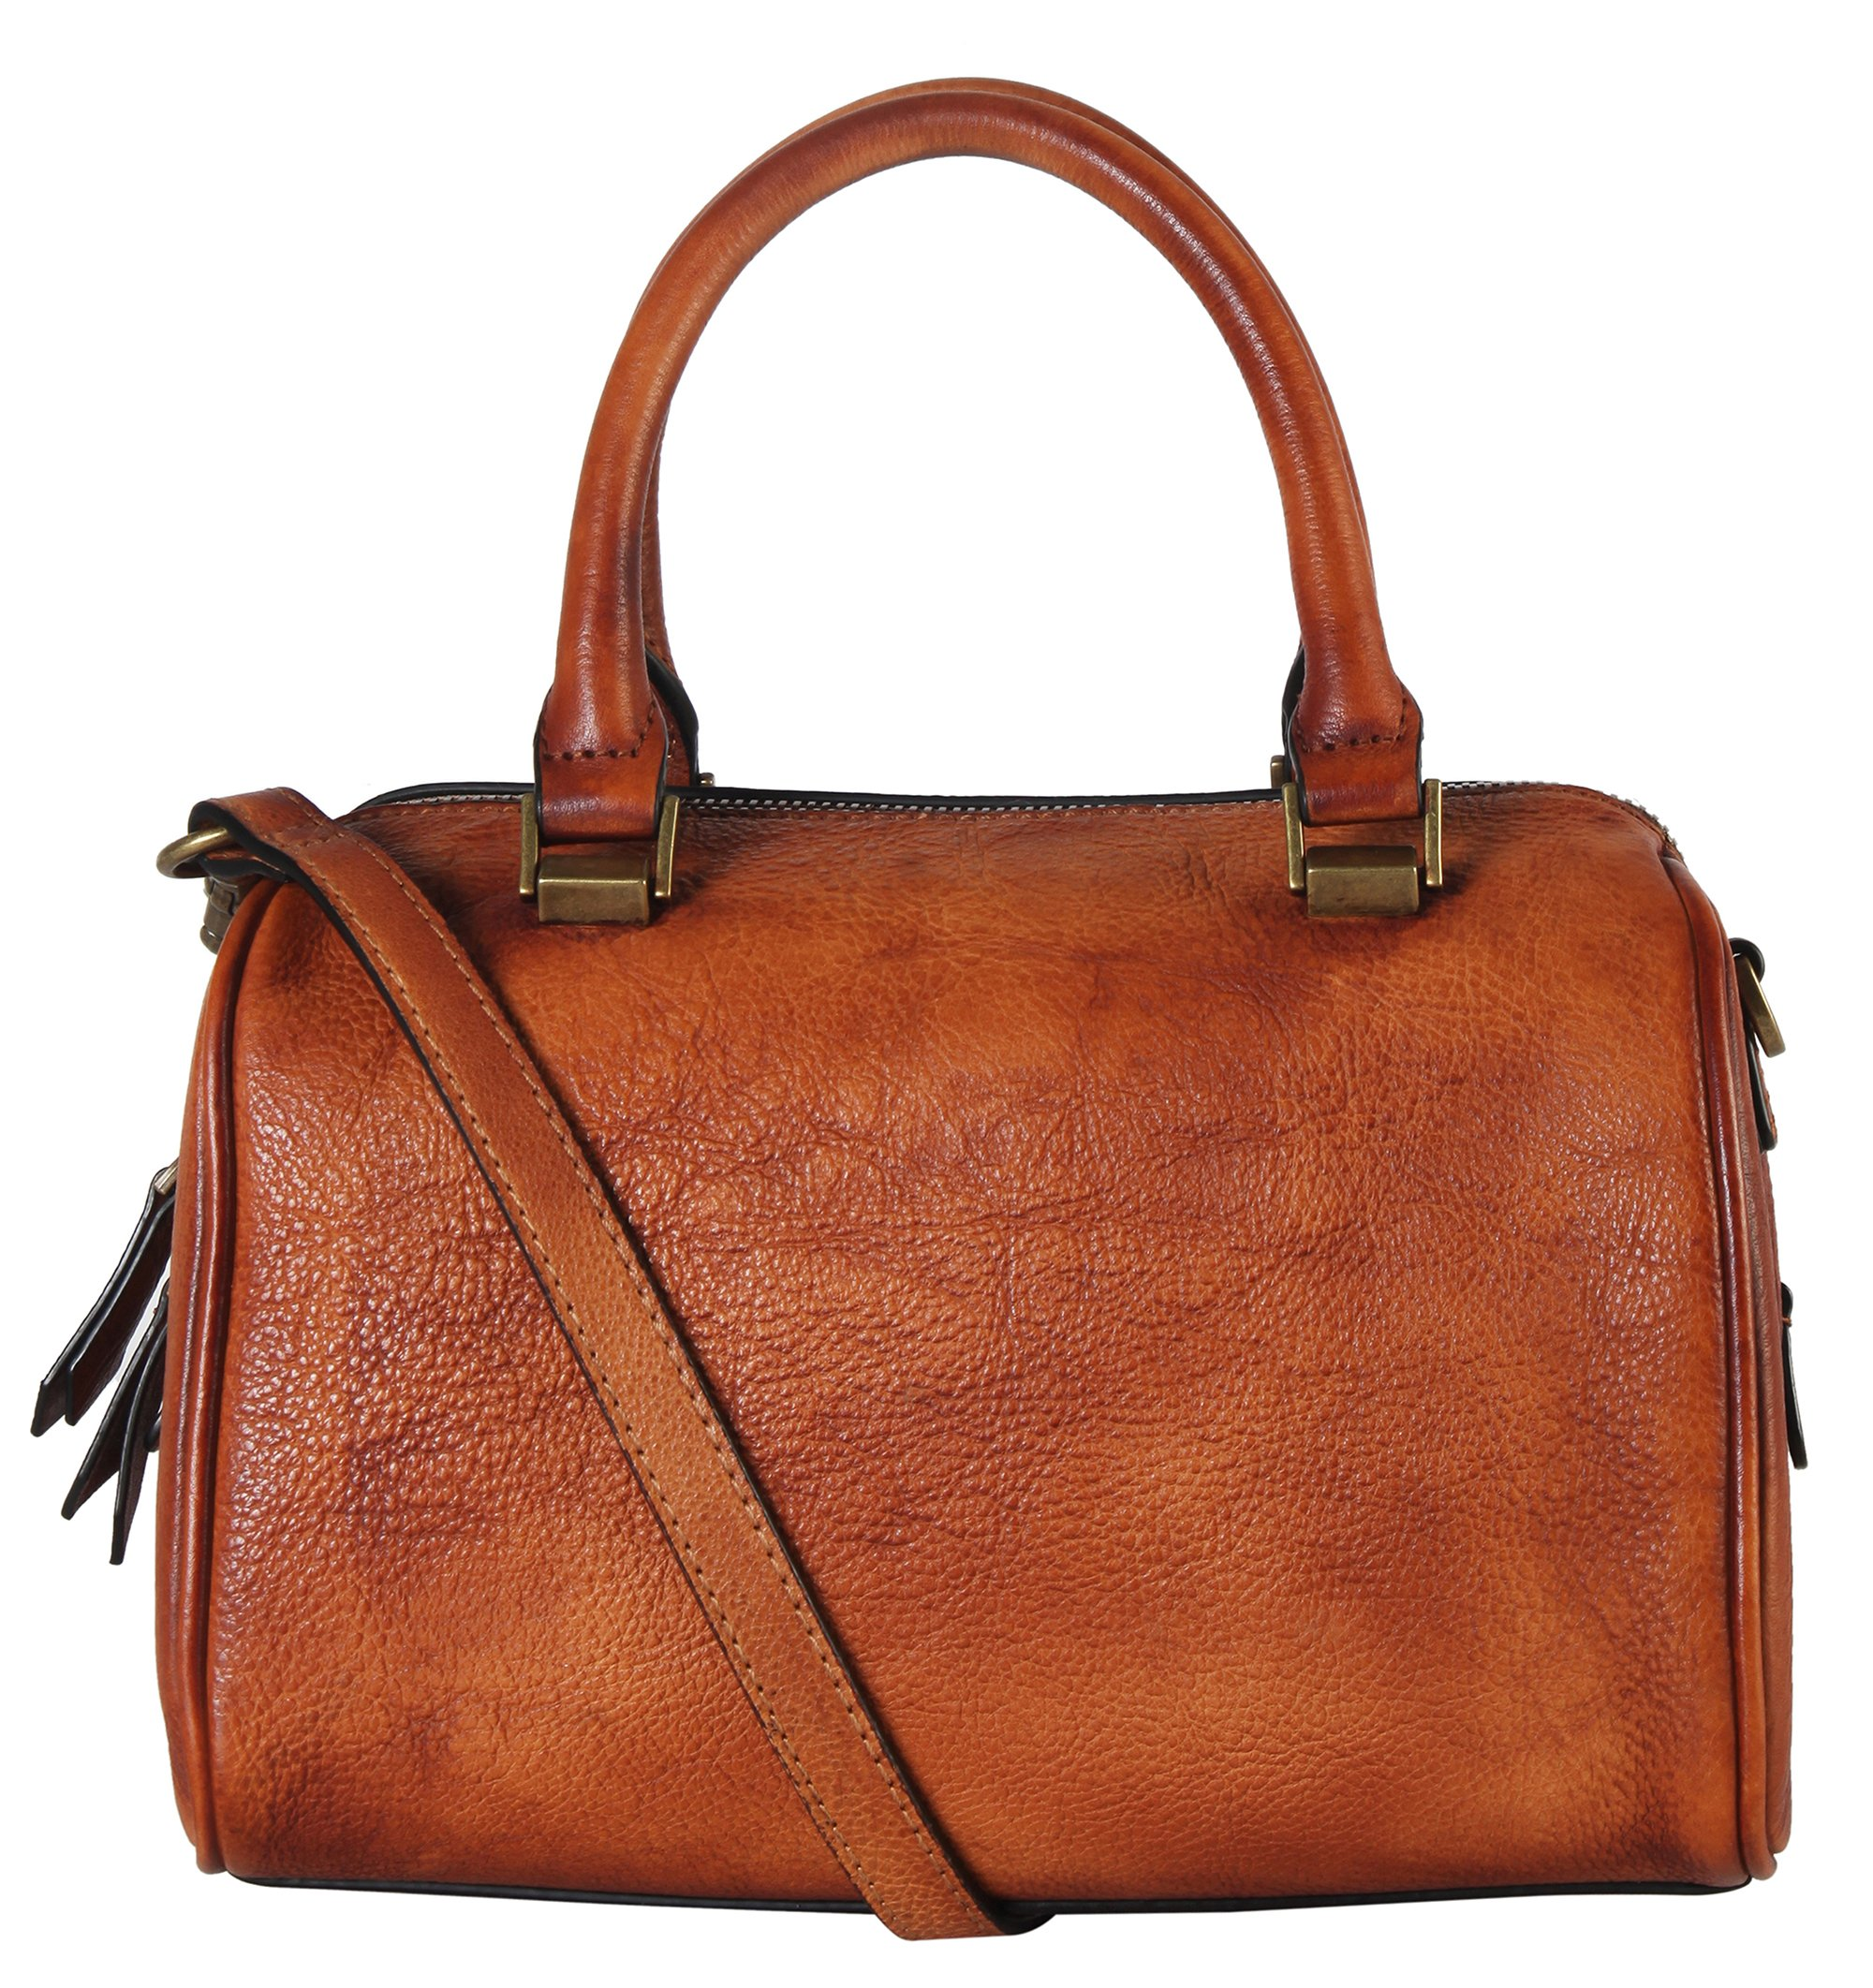 Diophy Doctor-Style Genuine Leather Zipper Closure Tote Handbag 160419 Brown